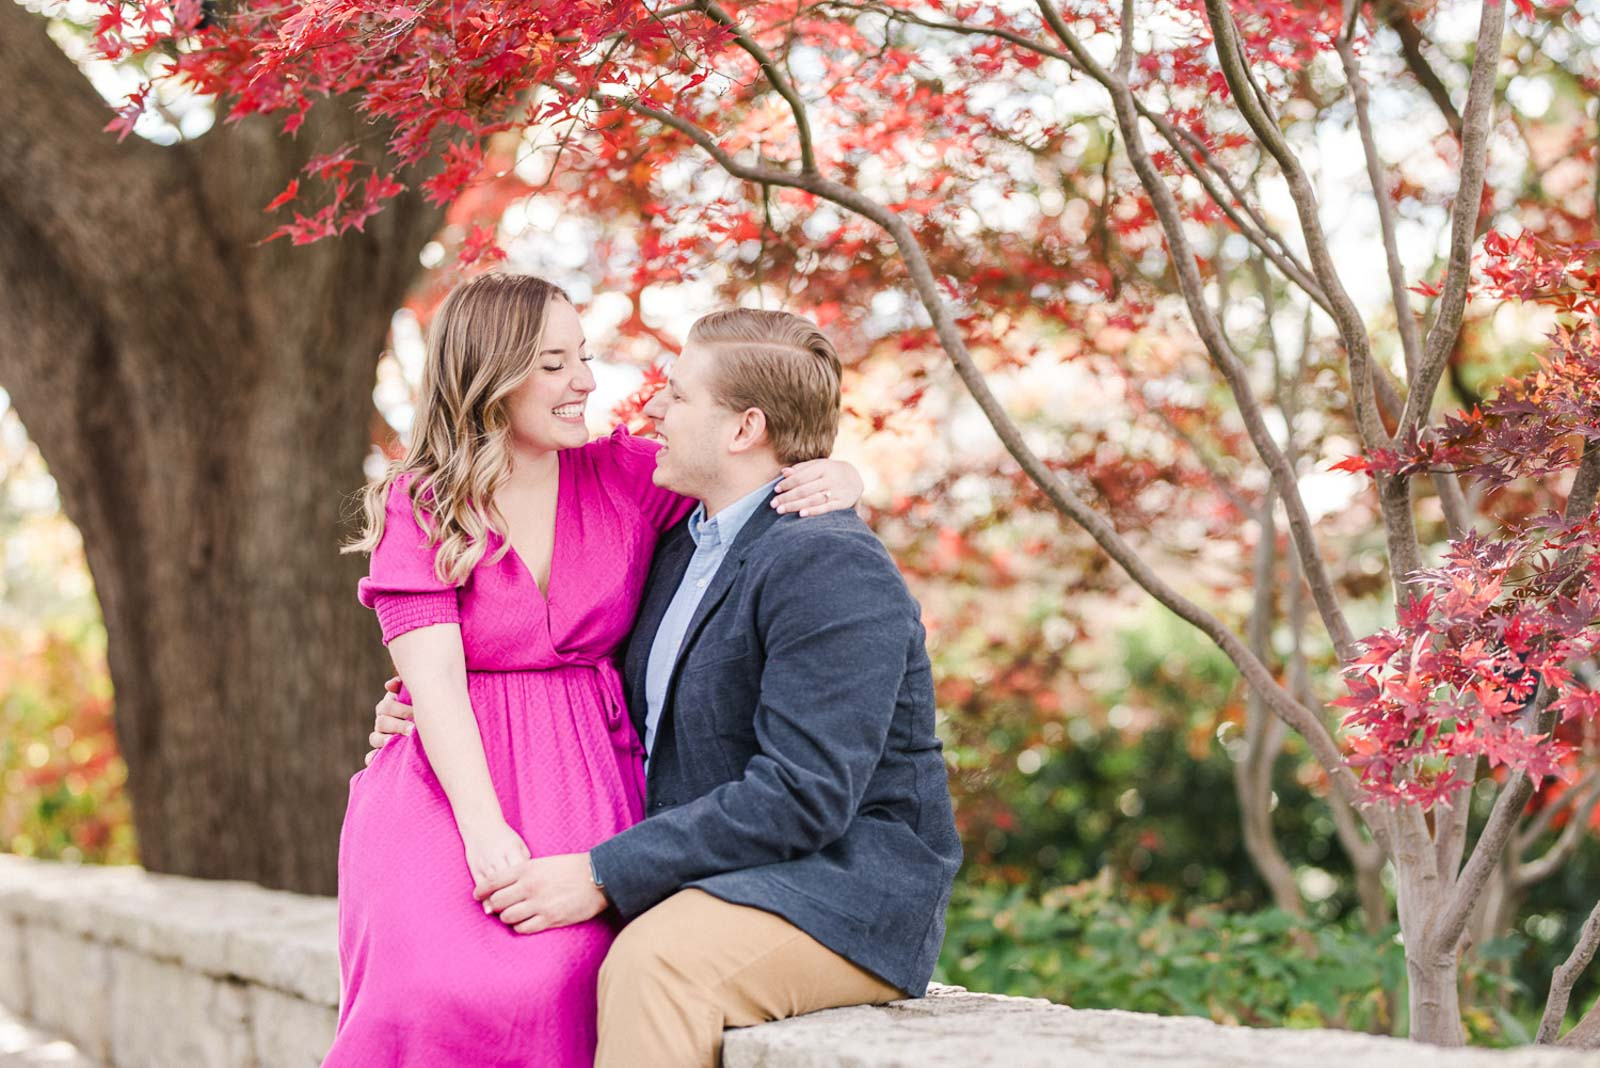 Dallas Arboretum Engagement-JenSymes-17.jpg